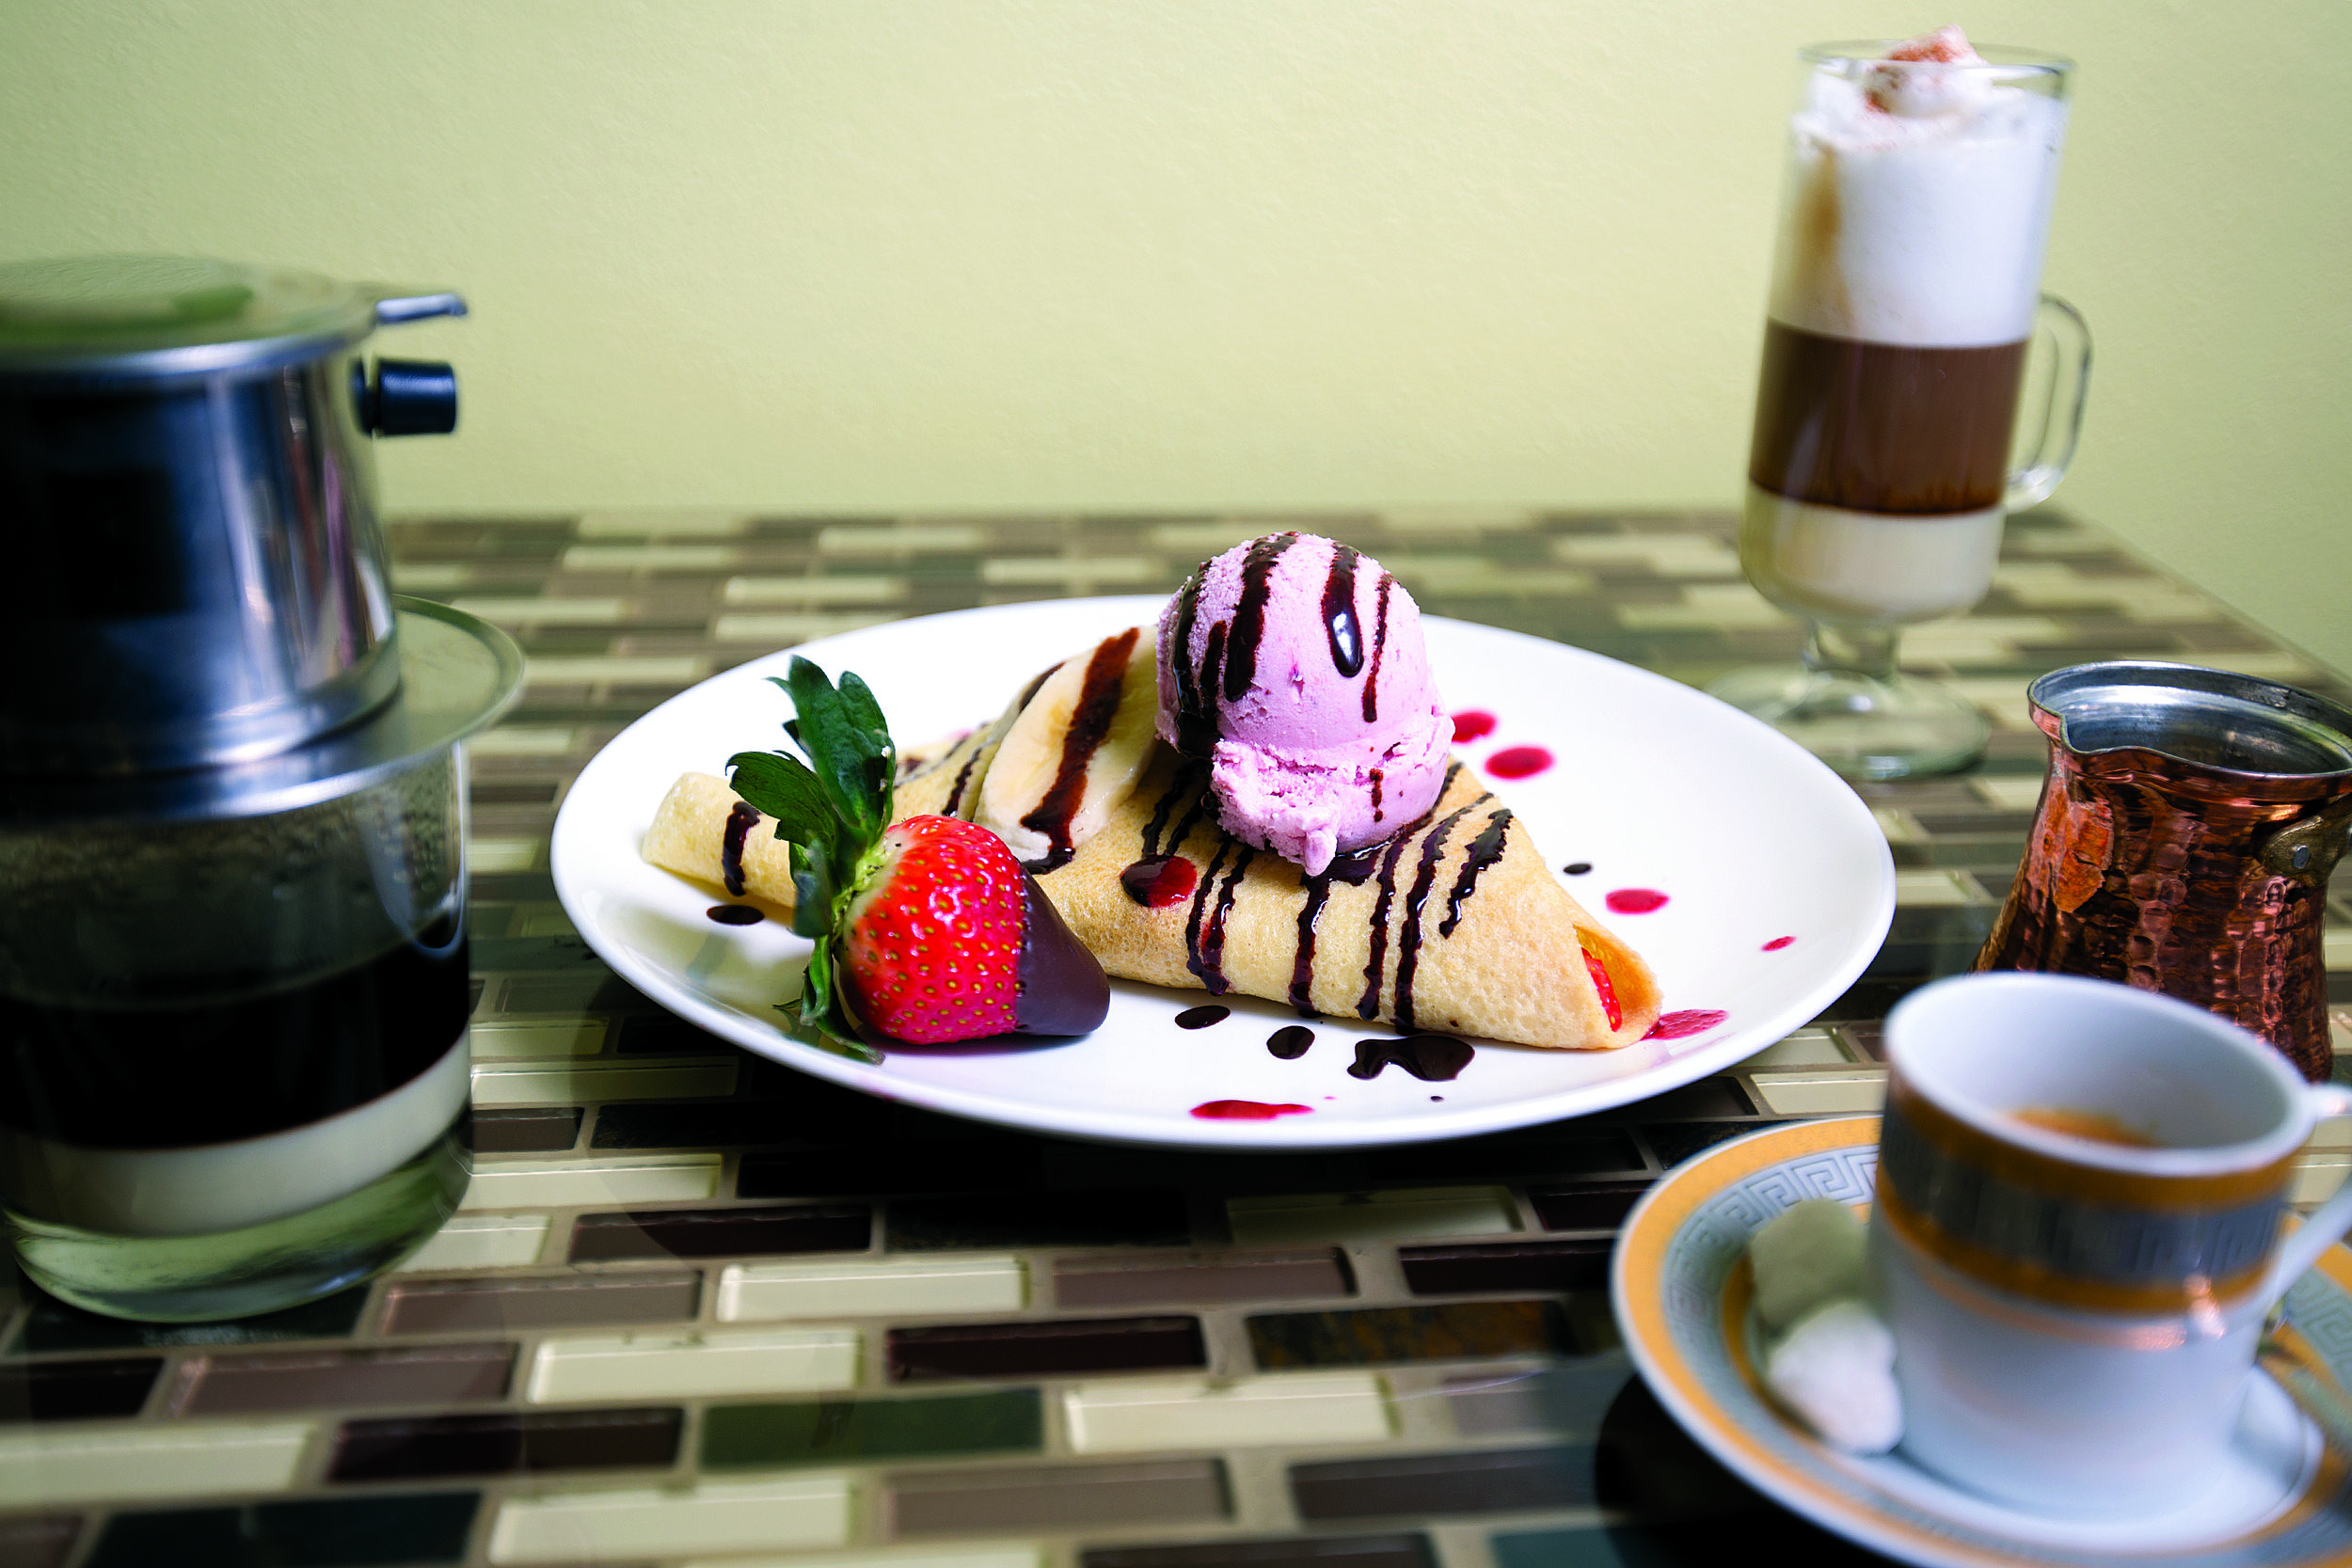 Try our specialty crepes with ice cream, or any of our delicious savory selections.